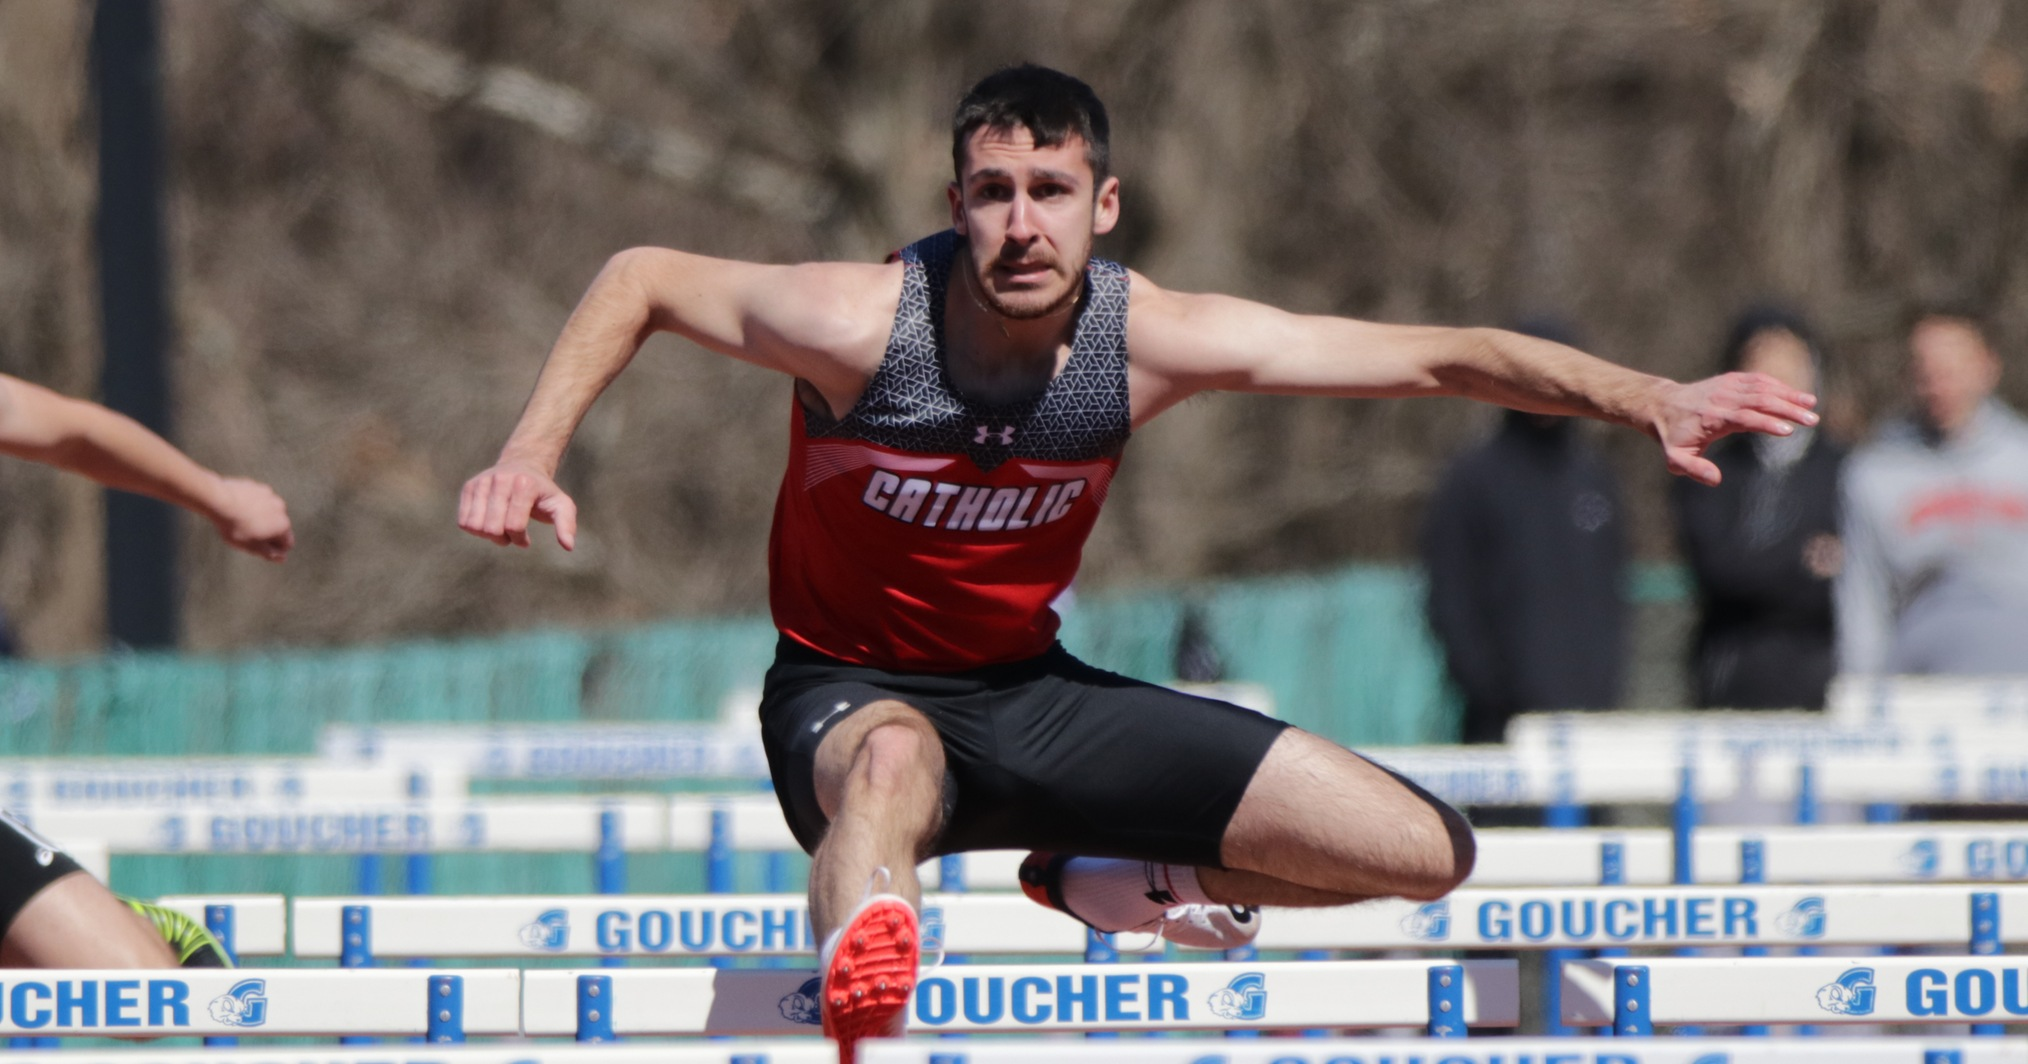 Cardinals Place Fifth in Outdoor Season Debut